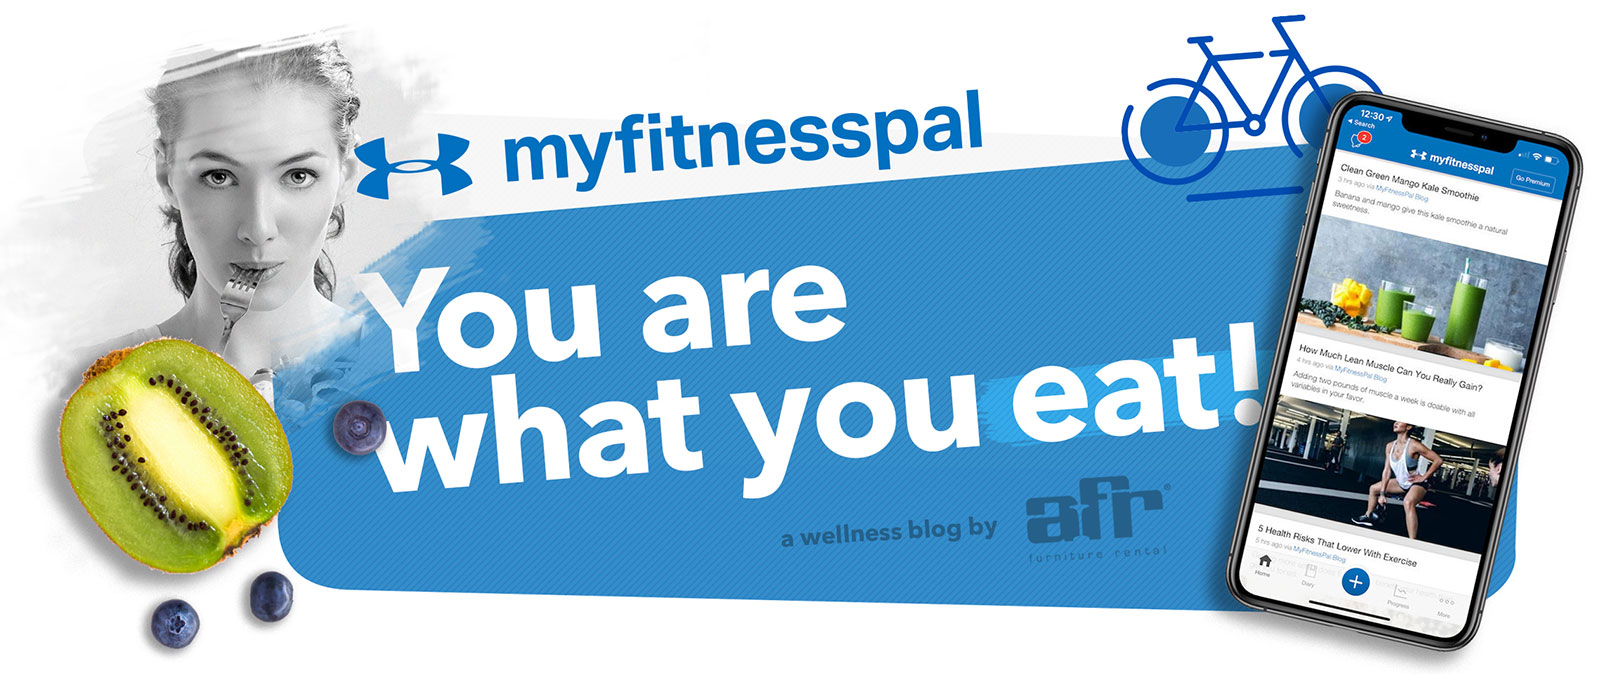 You Are What You Eat: MyFitnessPal - AFR Furniture Rental and AFR